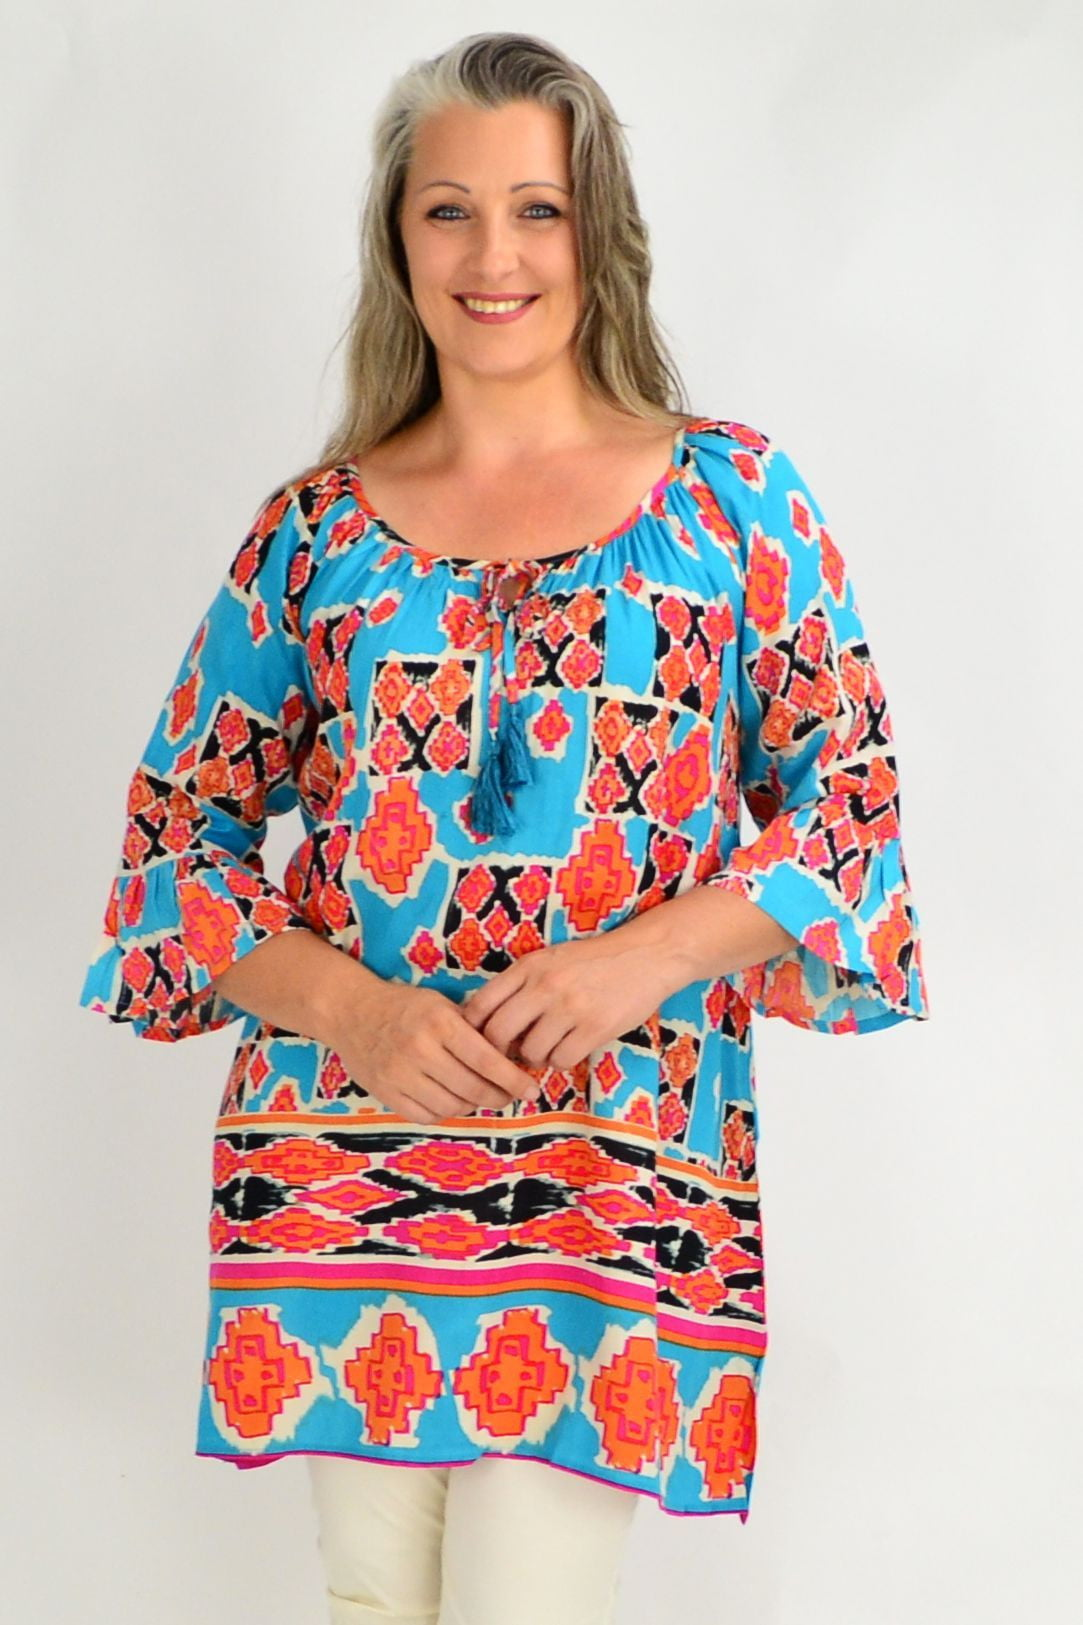 Peruvian Tunic Top Caftan | I Love Tunics | Tunic Tops | Tunic | Tunic Dresses  | womens clothing online